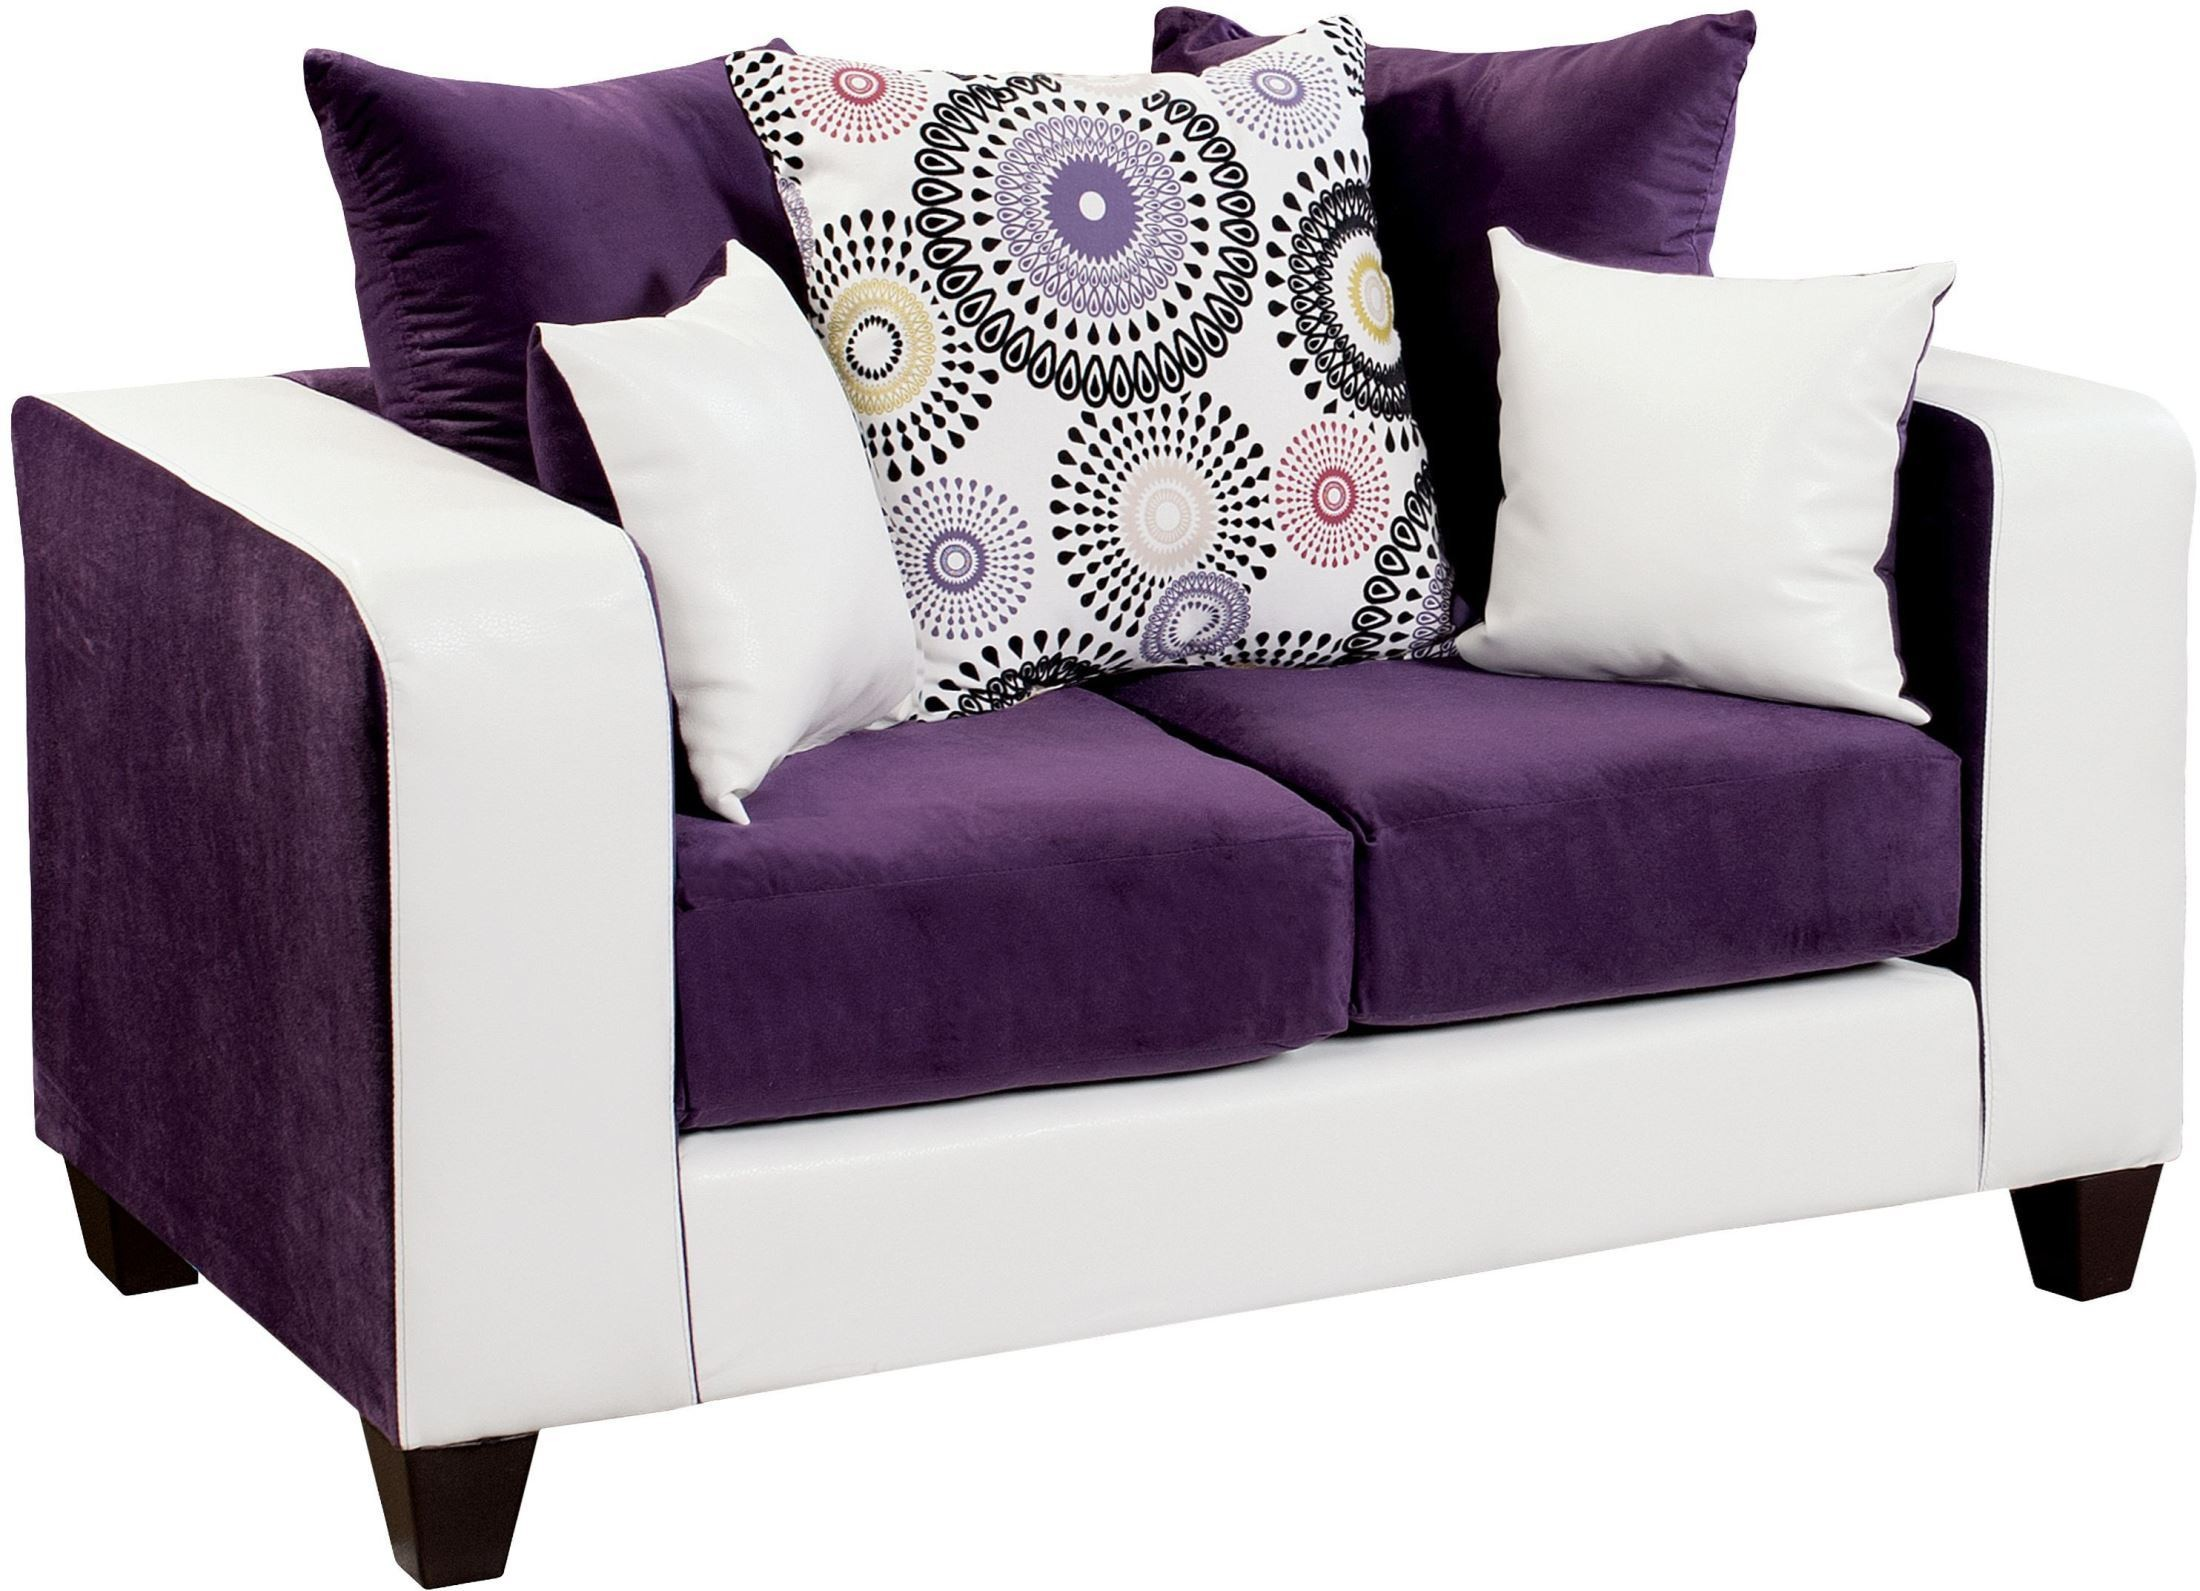 Riverstone Implosion Purple Velvet Loveseat Rs 4120 05l Gg Renegade Furniture